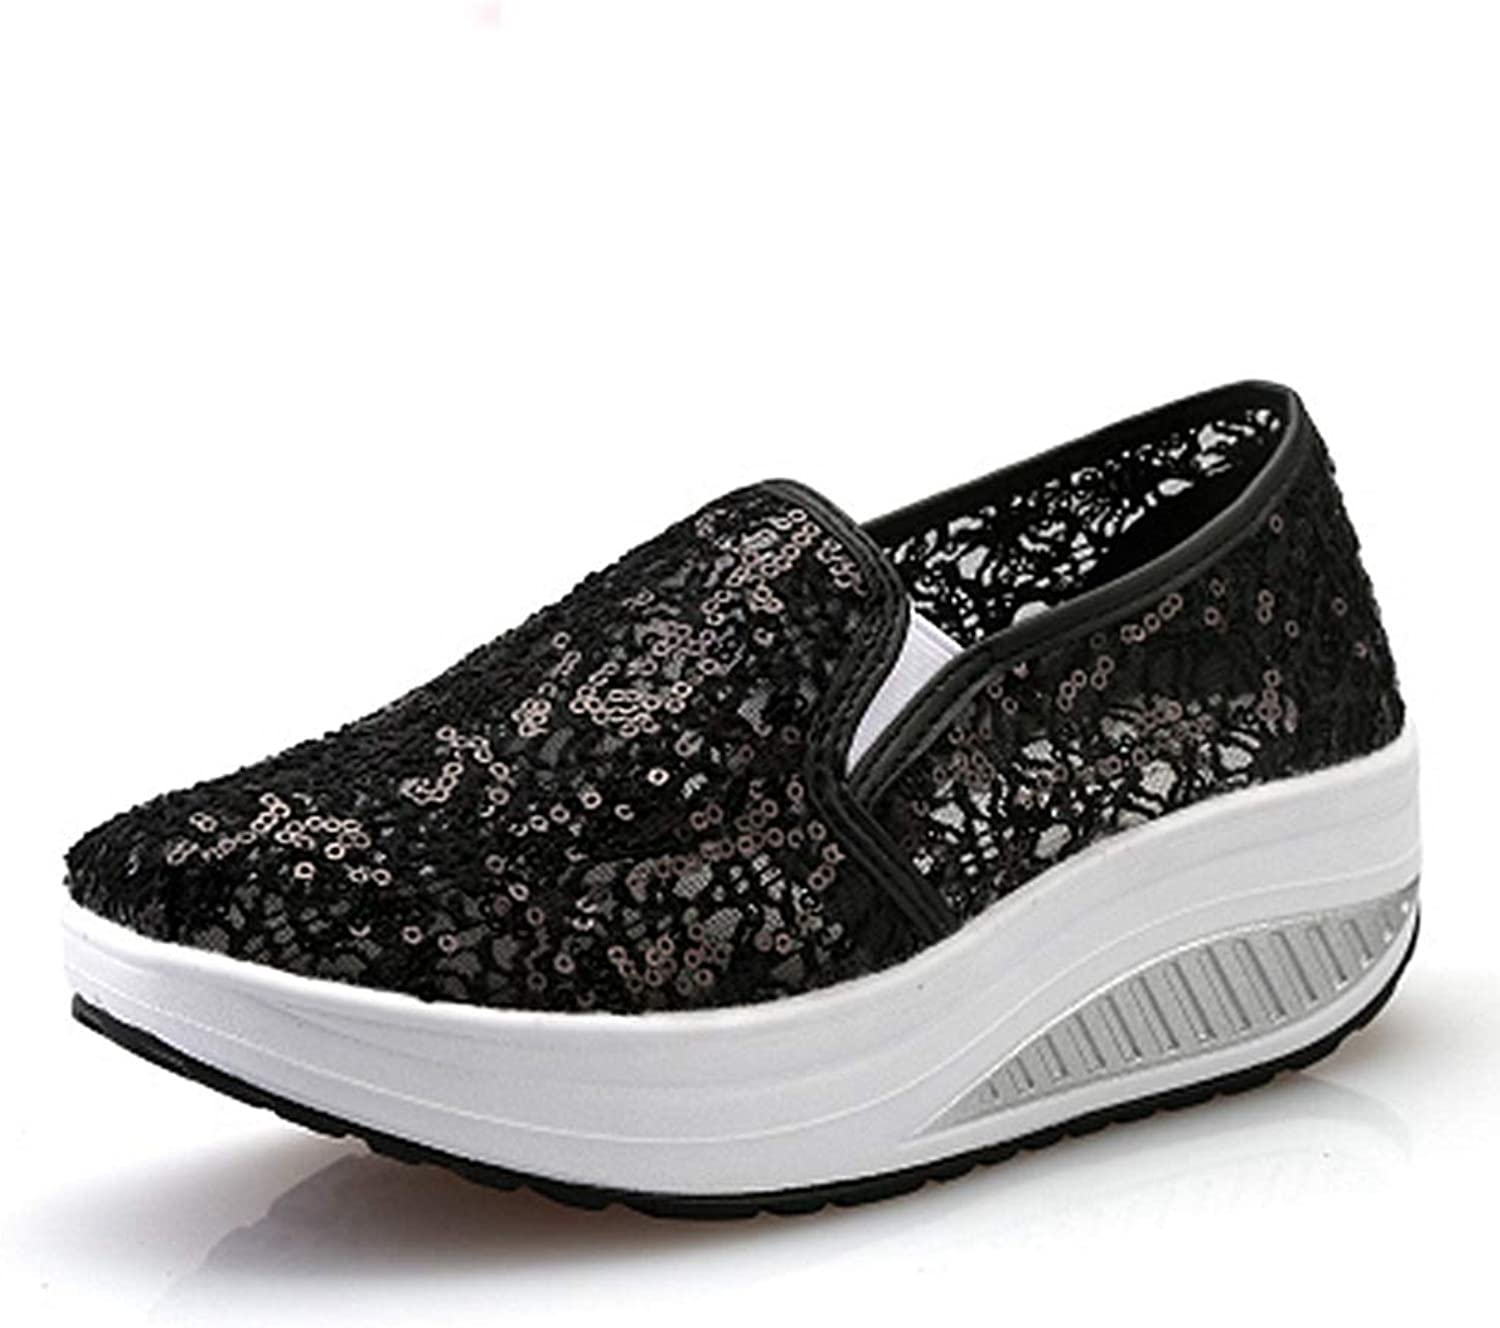 GIY Women's Slip On Wedges Sneakers Mesh Breathable Lightweight Sequin Casual Platform Slip-on Fitness Walking shoes